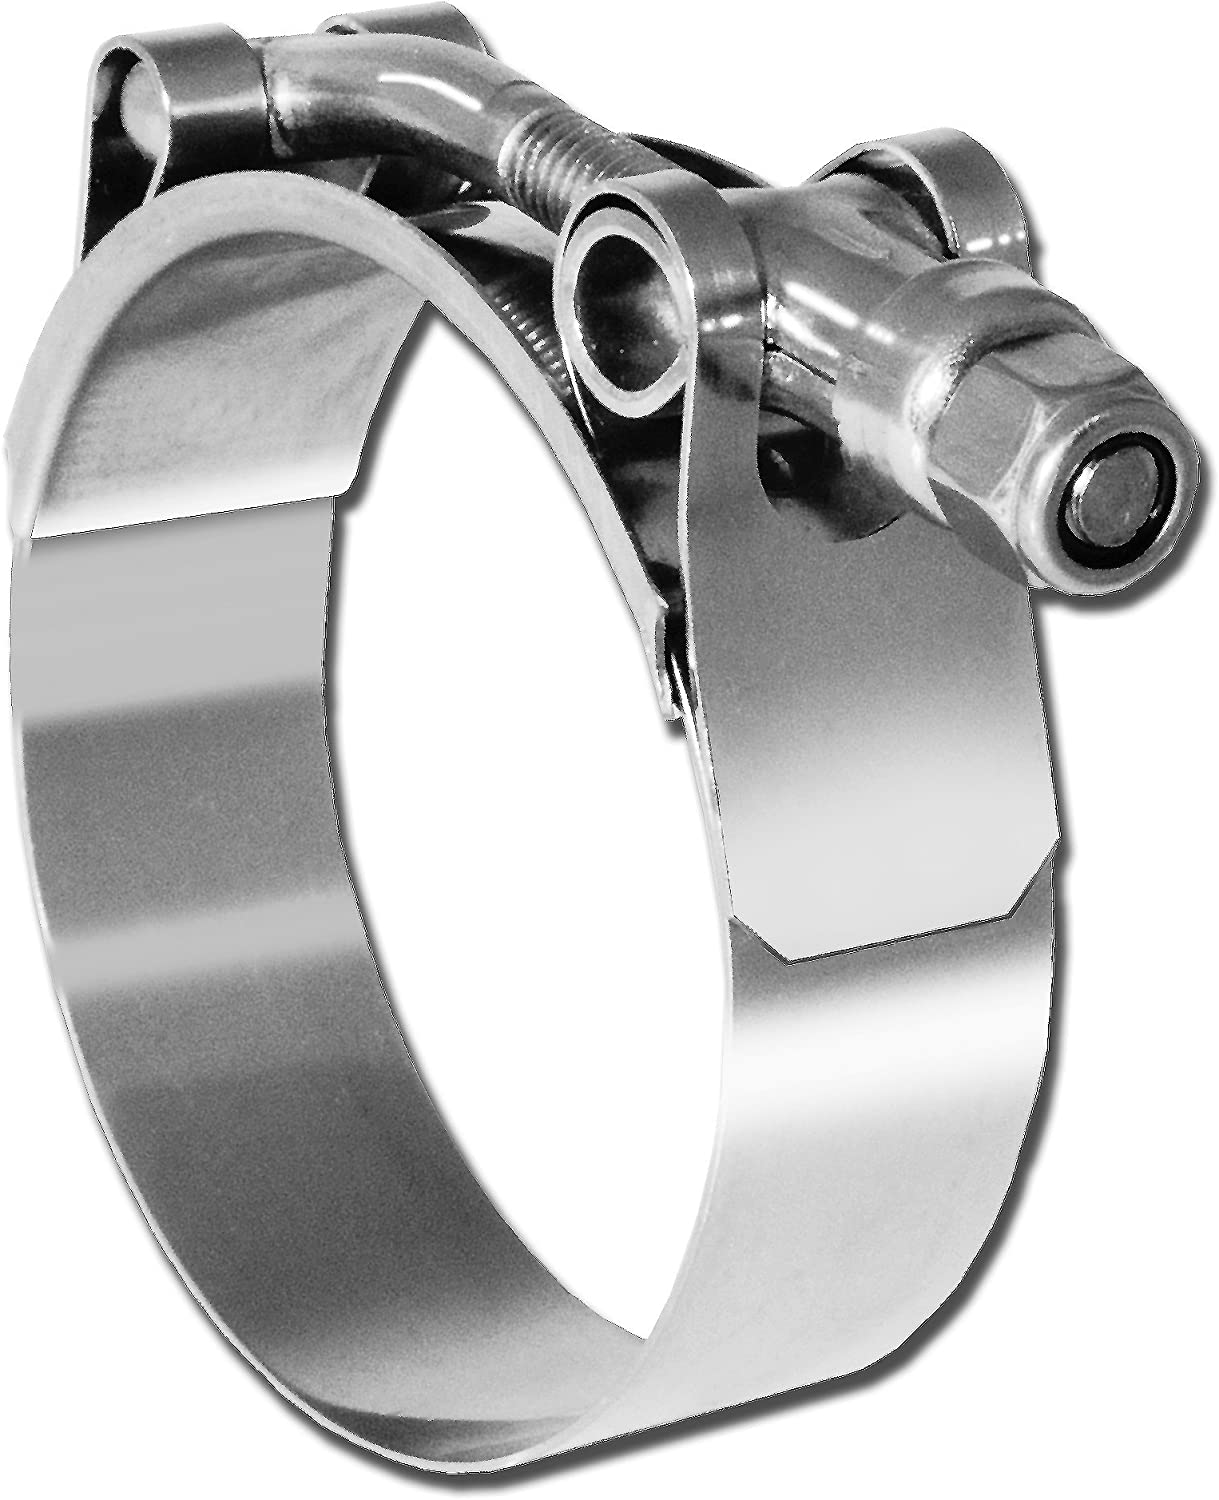 3-7//16-Inch SAE Size 72 Pro Tie 33733 T-Bolt All Stainless Hose Clamp Range 3-1//8-Inch